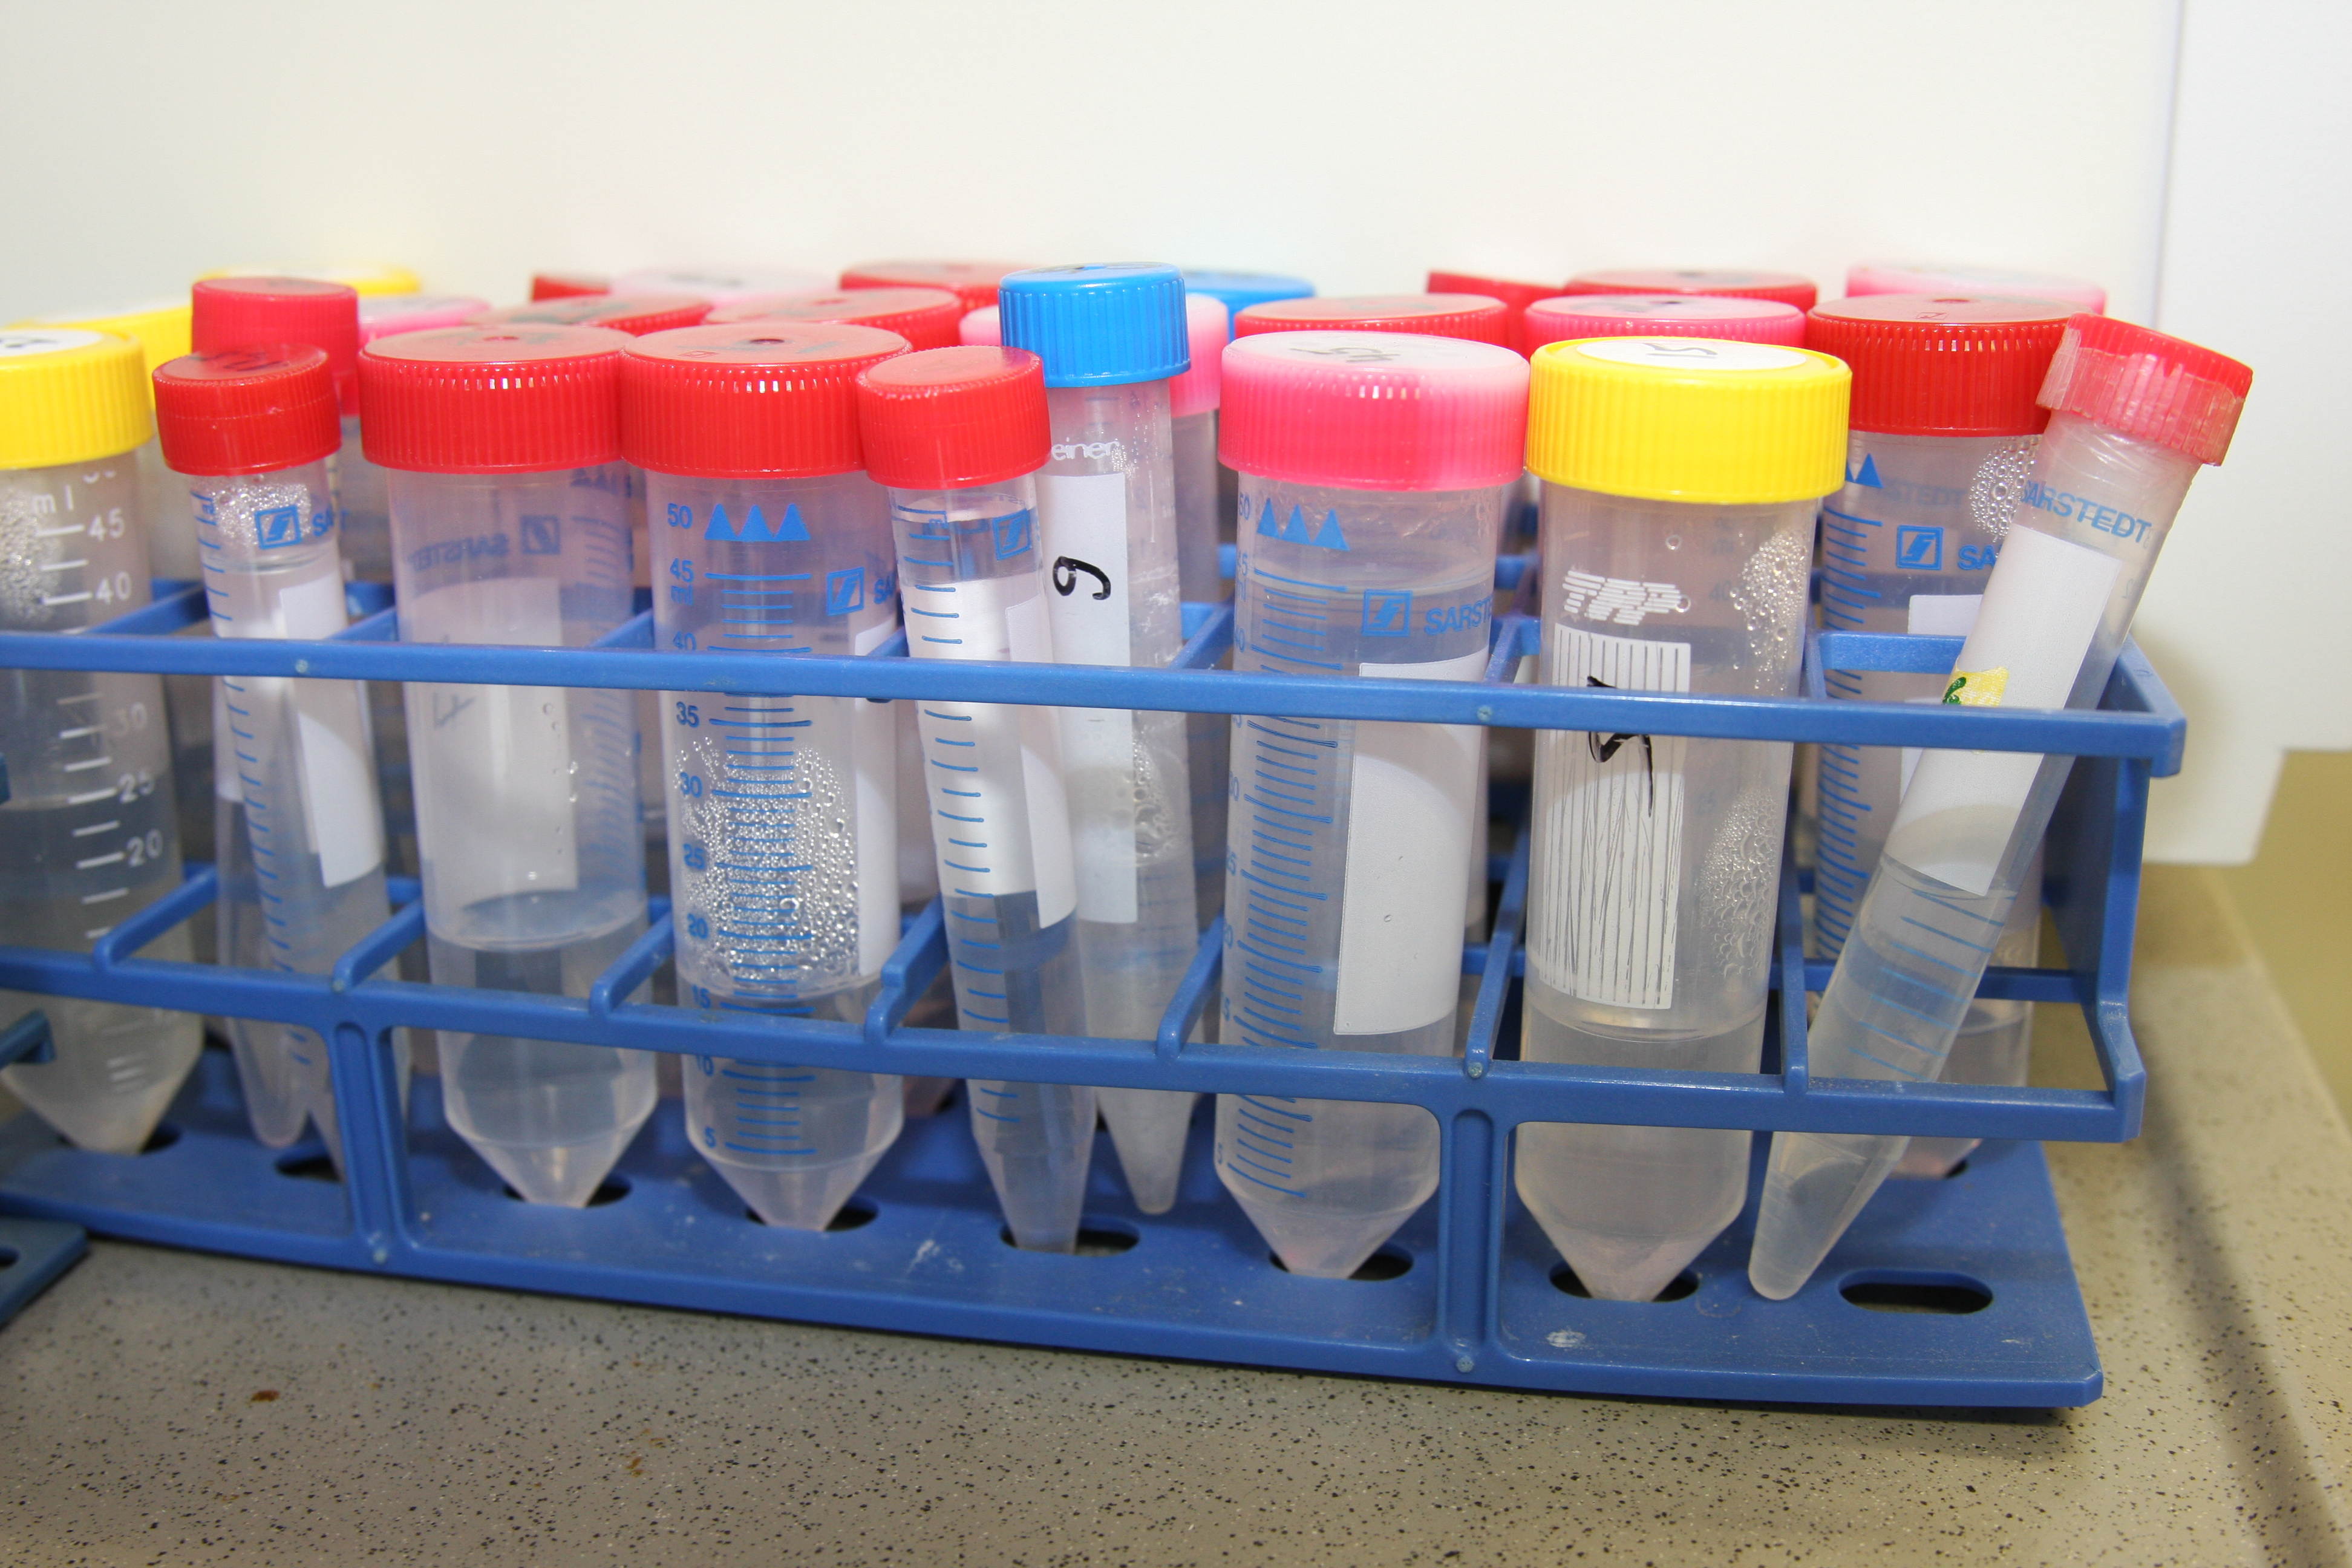 Test tube rack with various coloured tubes